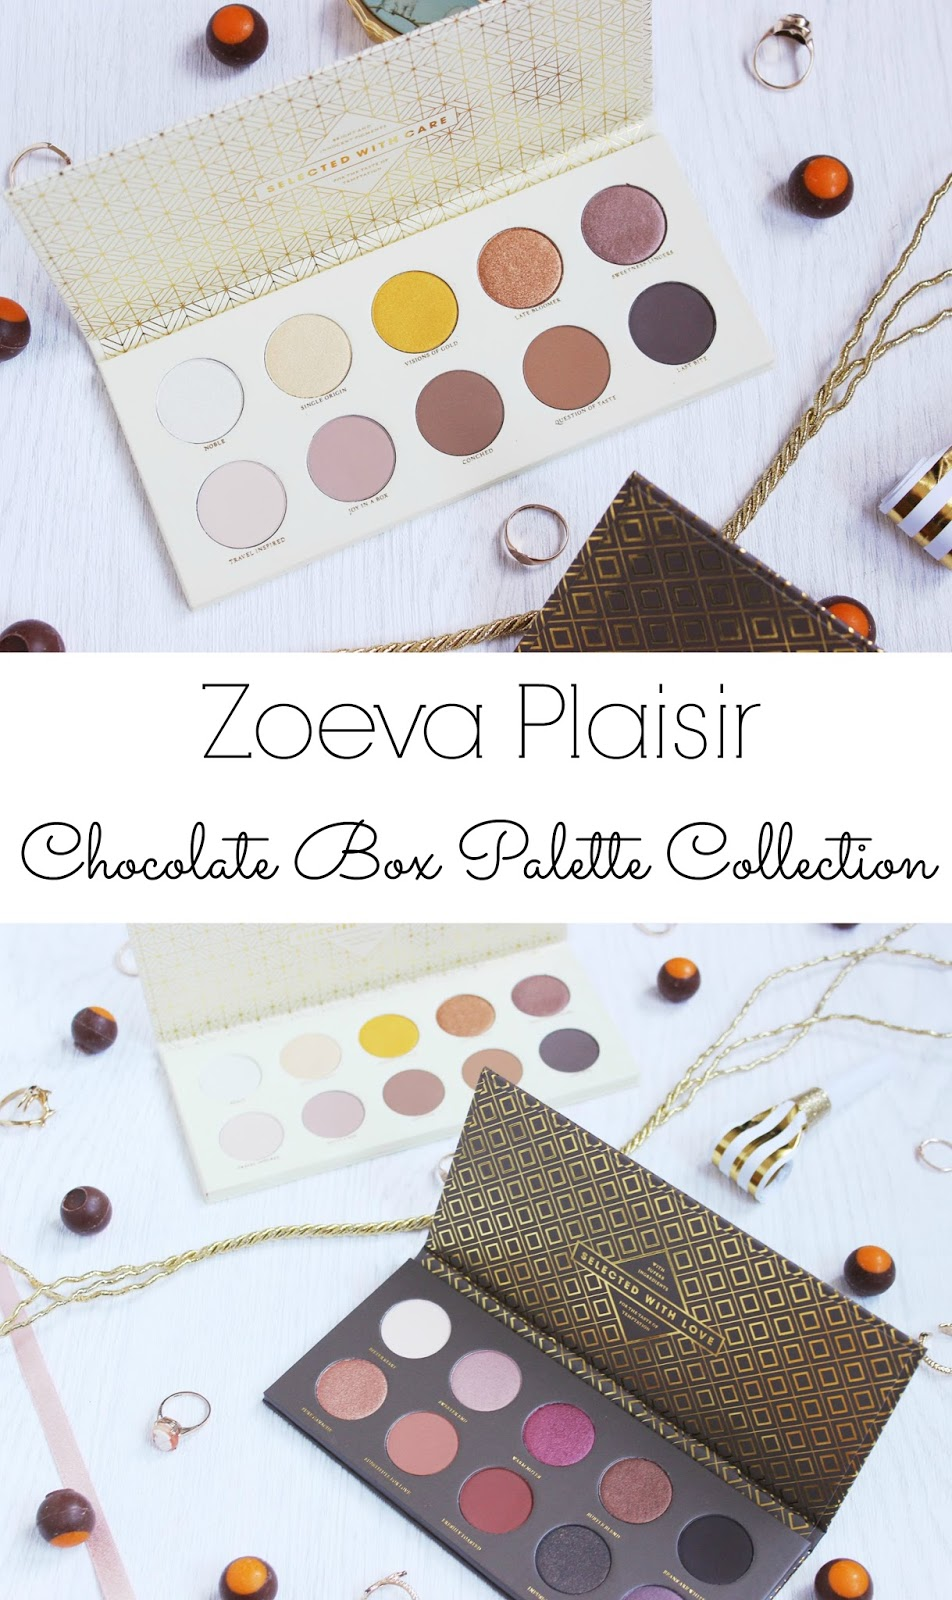 Zoeva-Plaisir-Chocolate-Box-palette-collection-review-overview